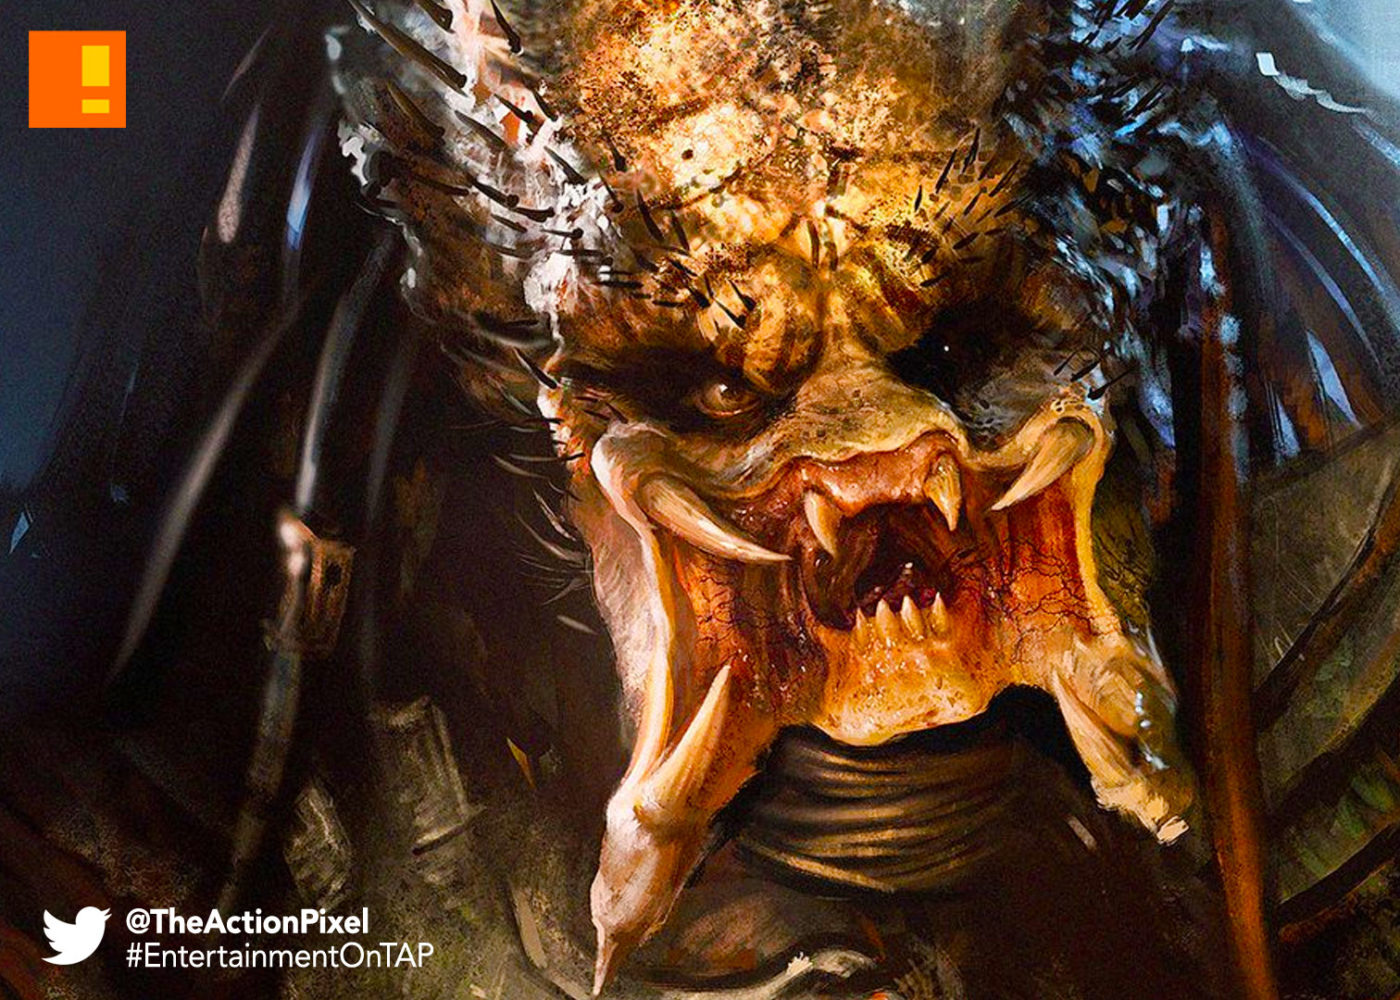 predator, the action pixel, entertainment on tap